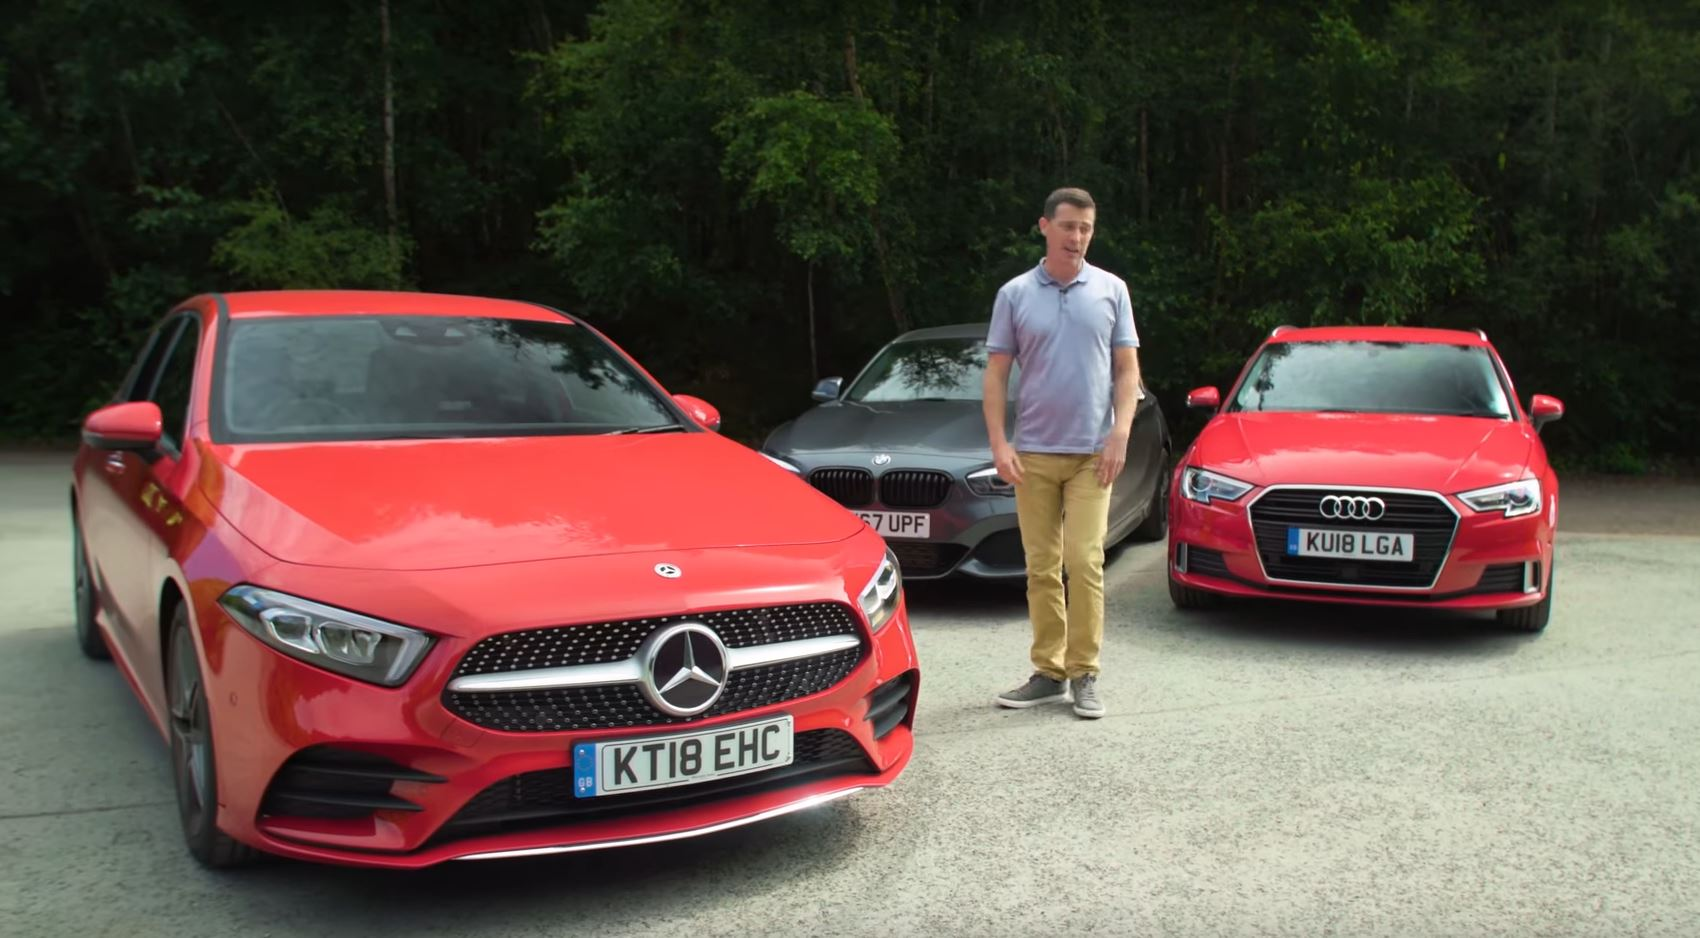 2019 Mercedes A Class Finally Compared To Audi A3 And Bmw 1